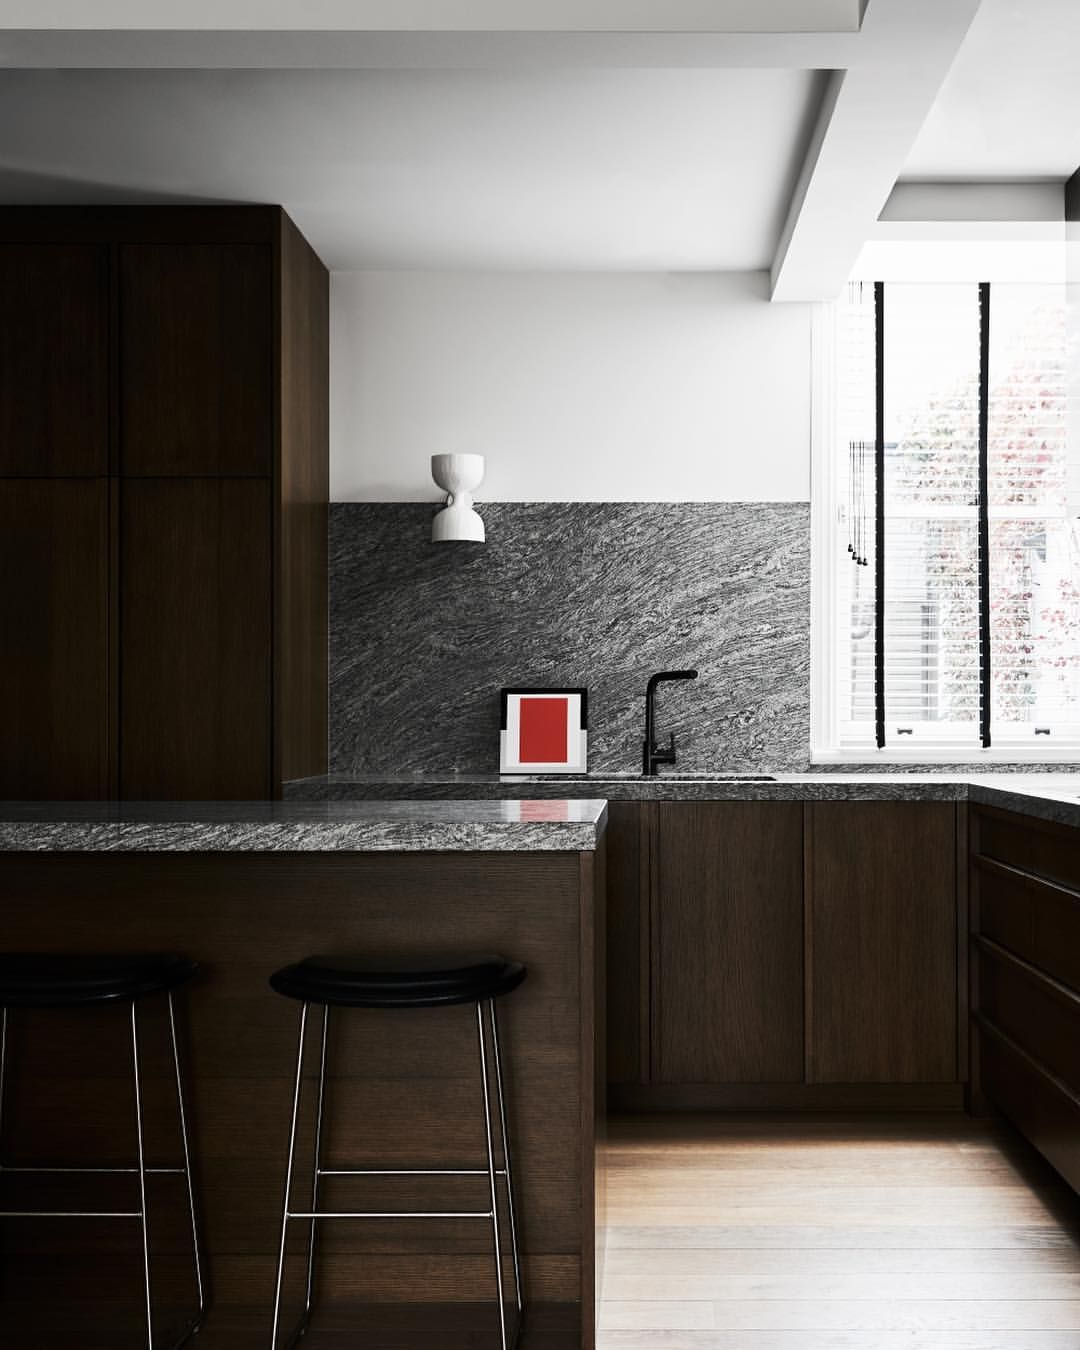 Kitchen Design Melbourne: Pin By Daniel Maj On Contrast